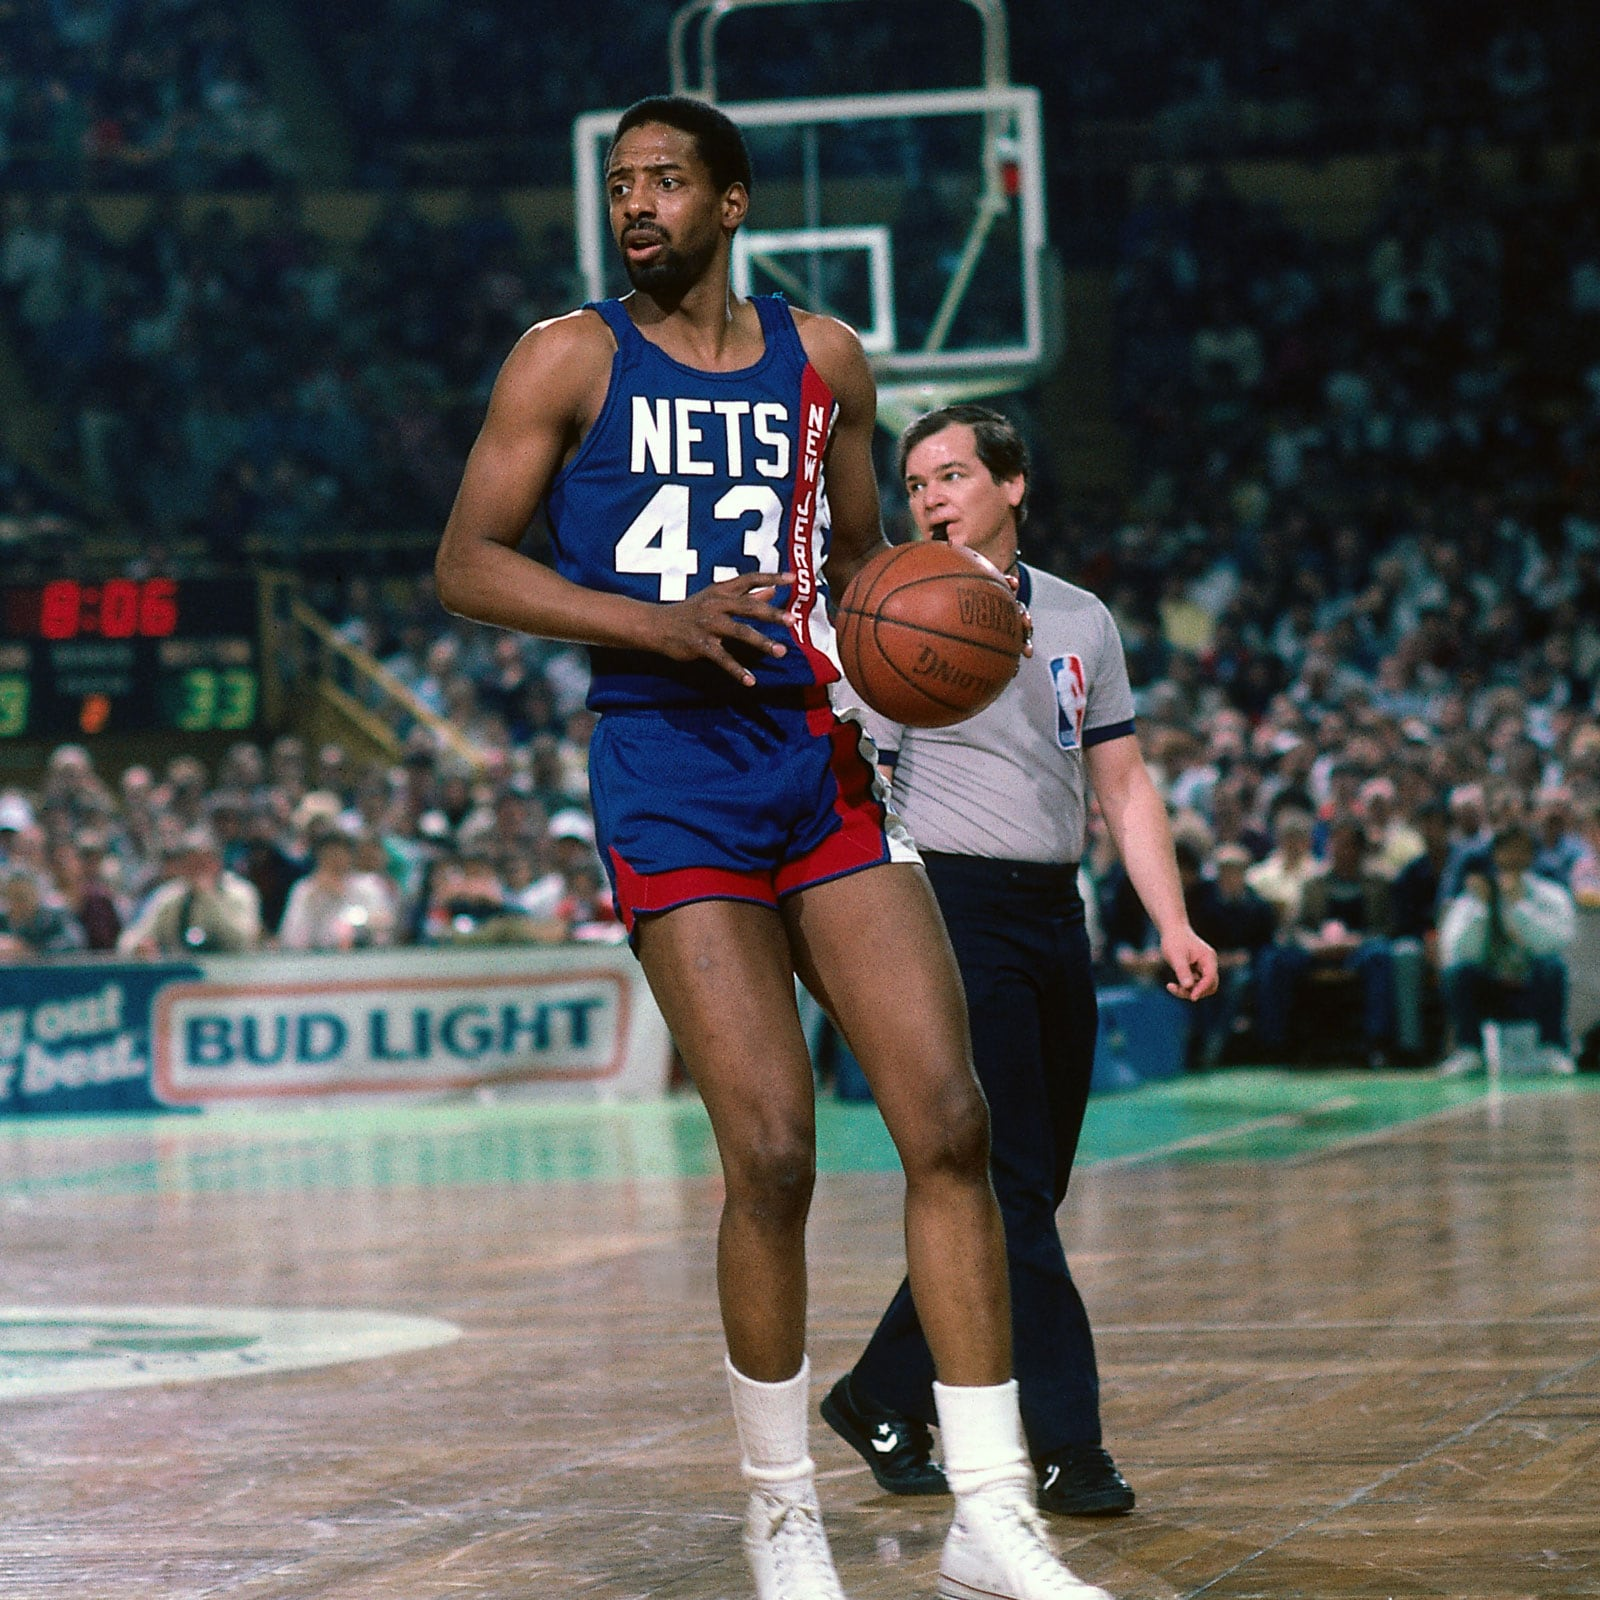 Mickey Johnson #43 of the New Jersey Nets dribbles the ball during a game circa 1986 at the Boston Garden in Boston, Massachusetts.